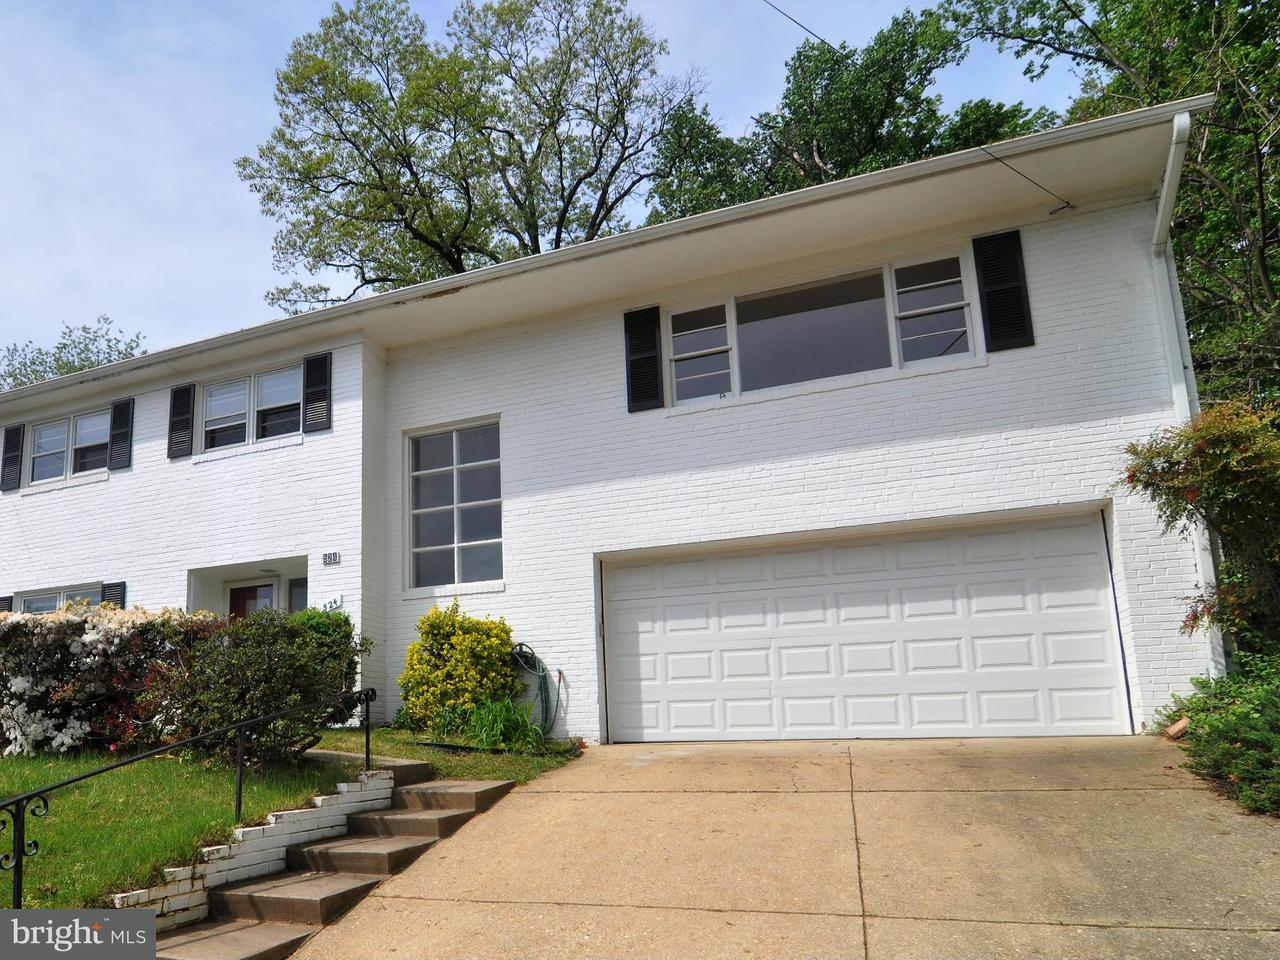 Single Family Home for Sale at 524 N LIVINGSTON Street 524 N LIVINGSTON Street Arlington, Virginia 22203 United States